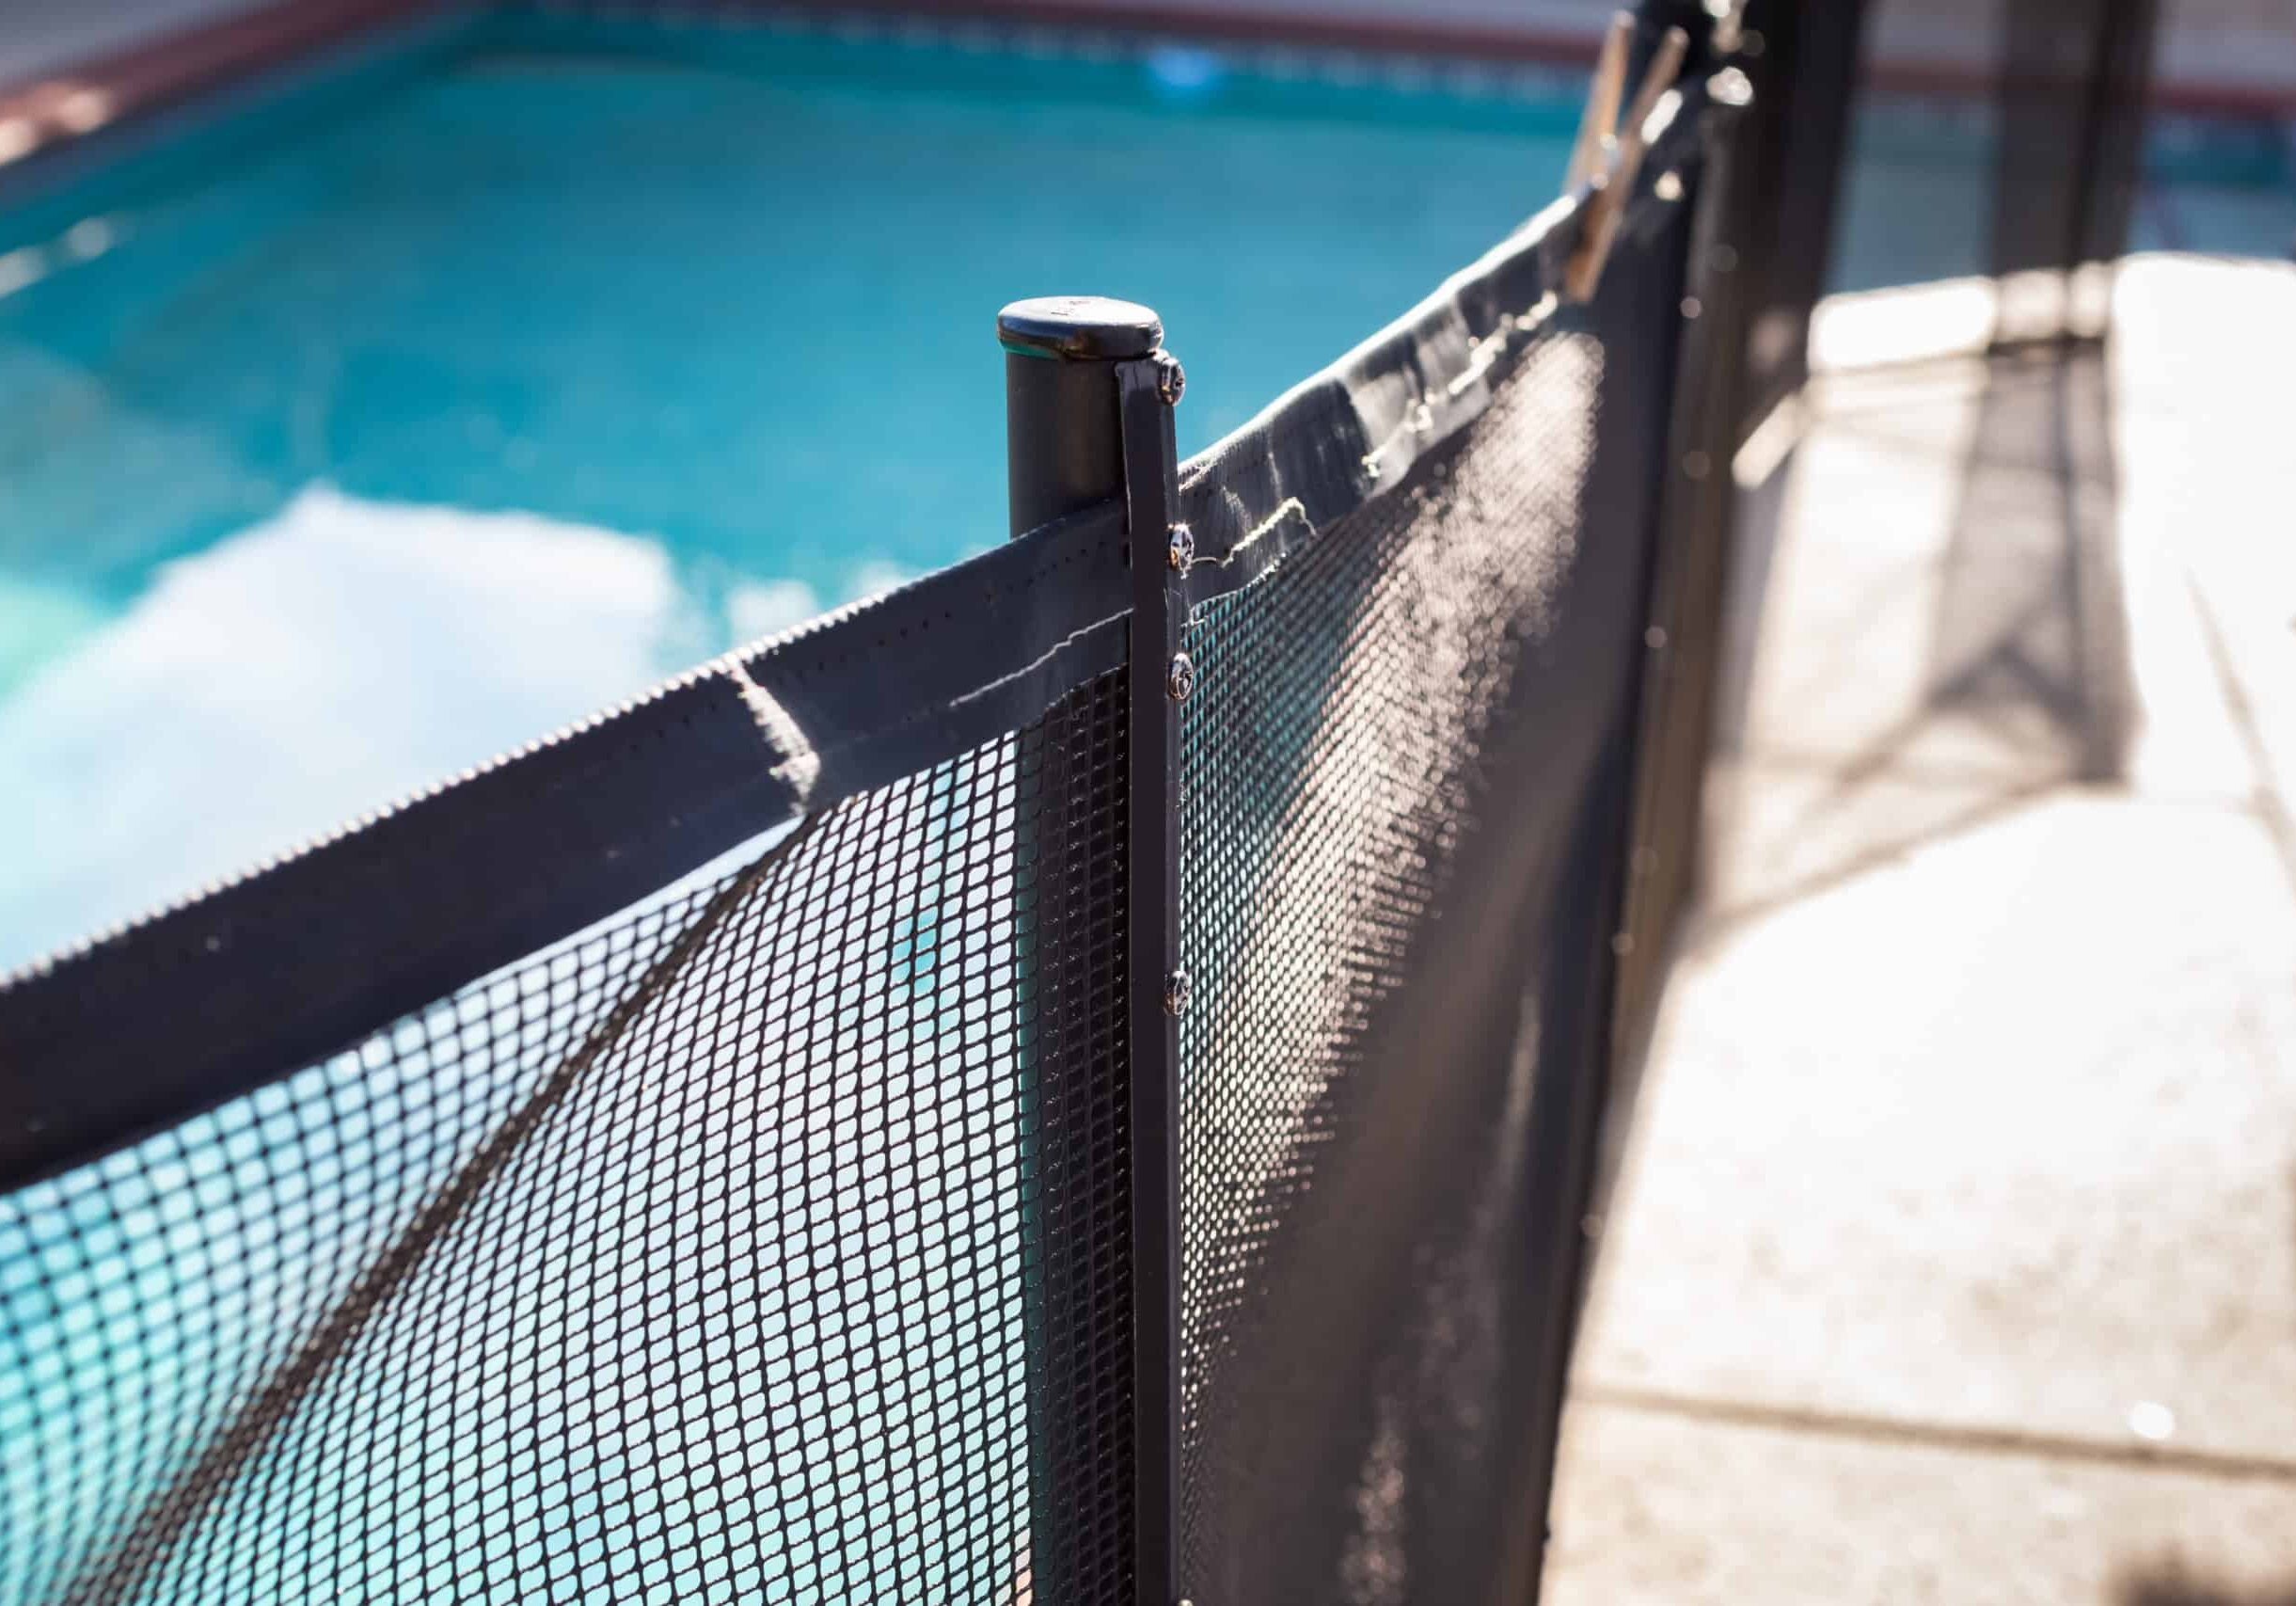 A closeup view of a swimming pool fence post, in a home backyard setting.